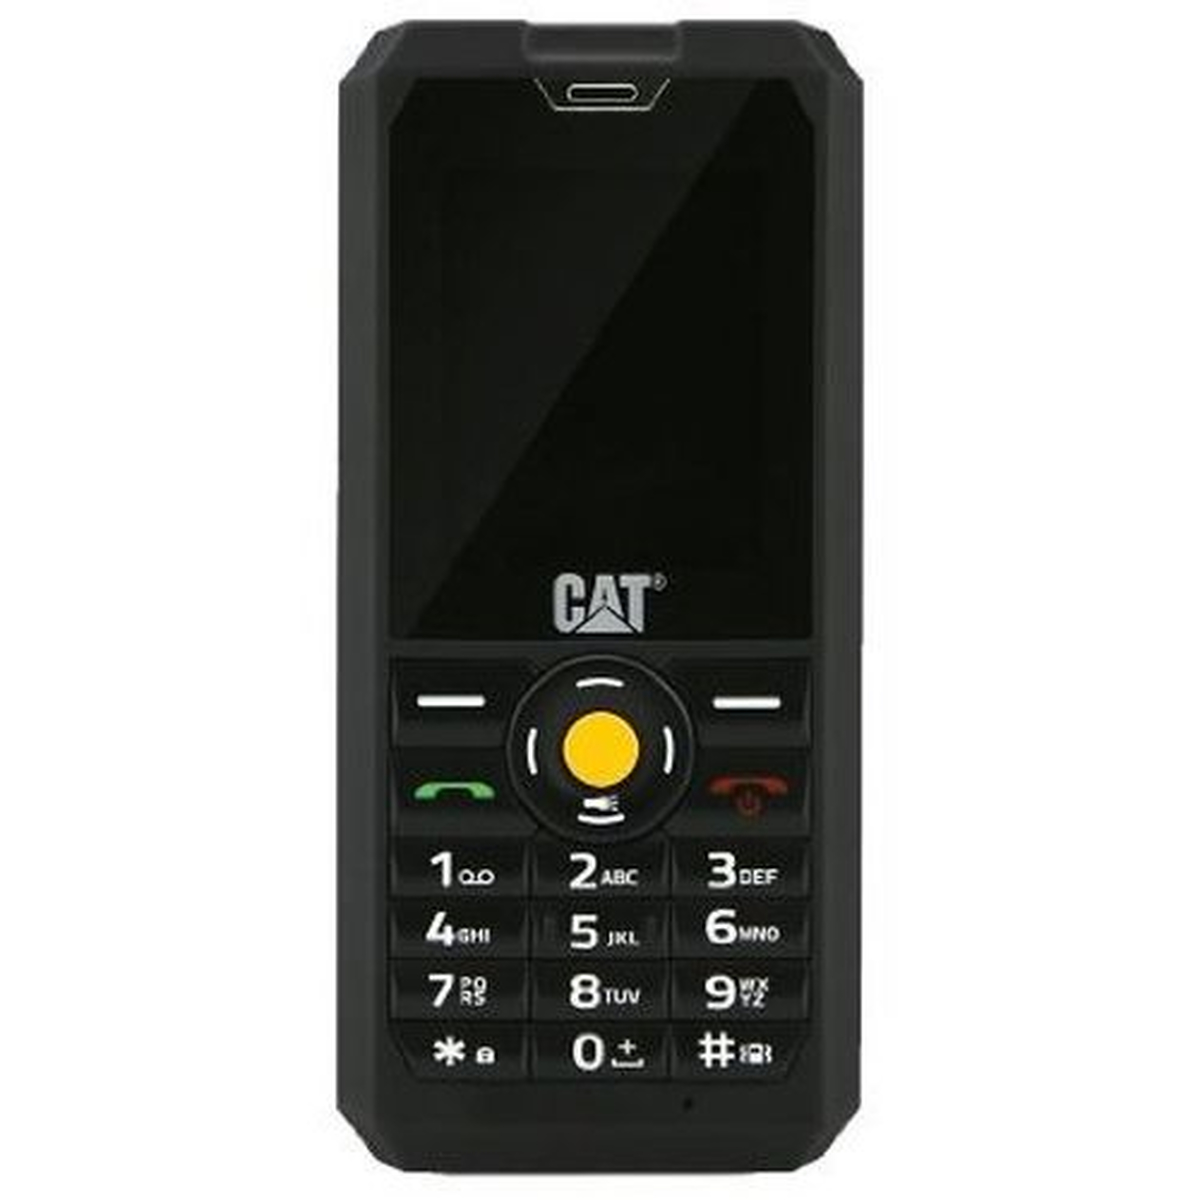 Cat B30 Handy #wieneu